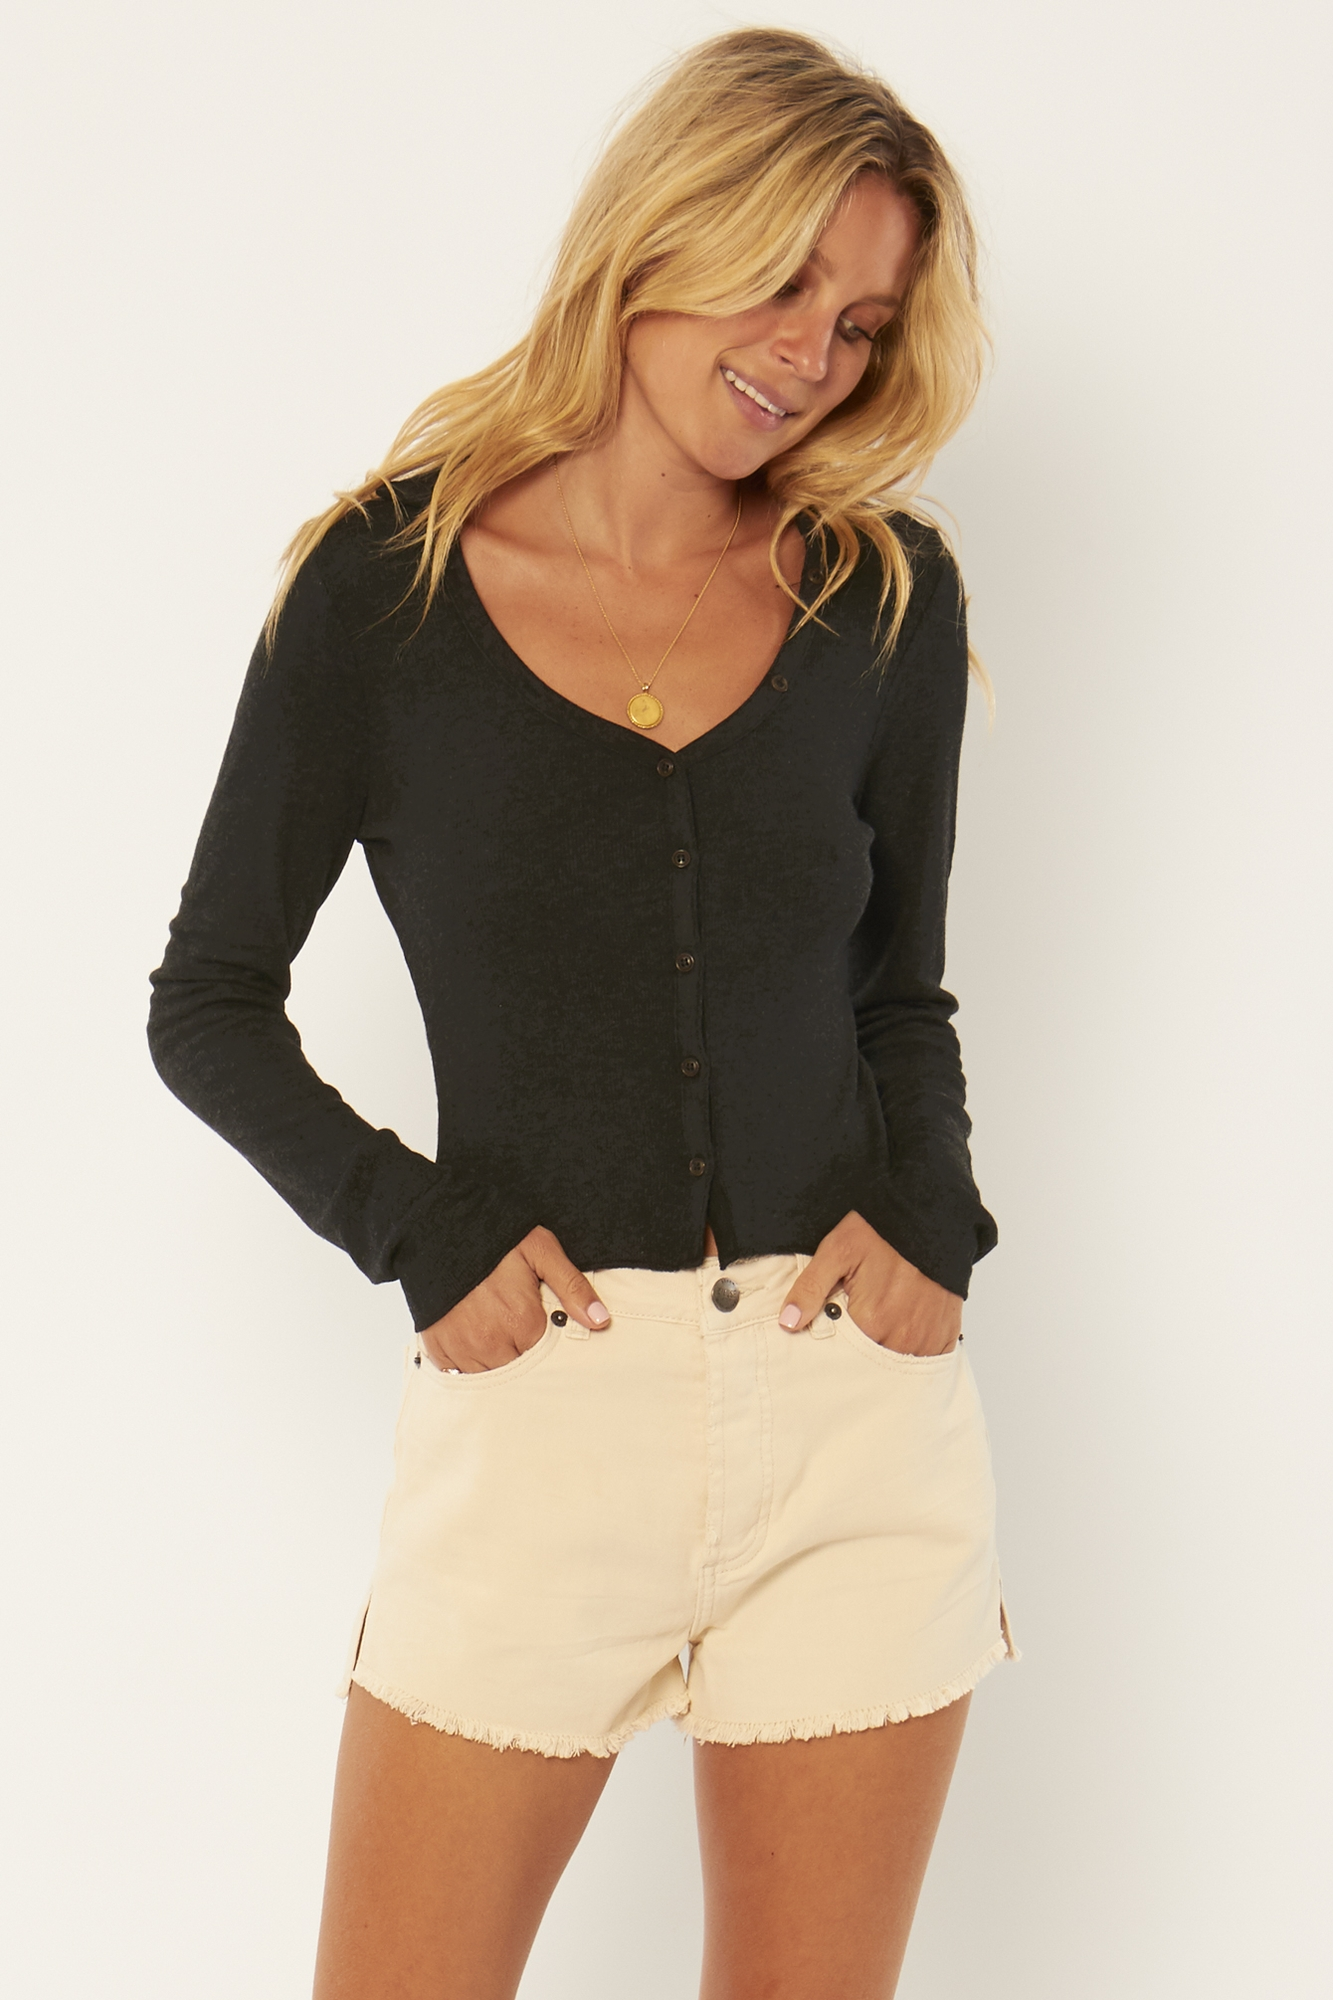 TAKE DOWN LONG SLEEVE KNIT TOP